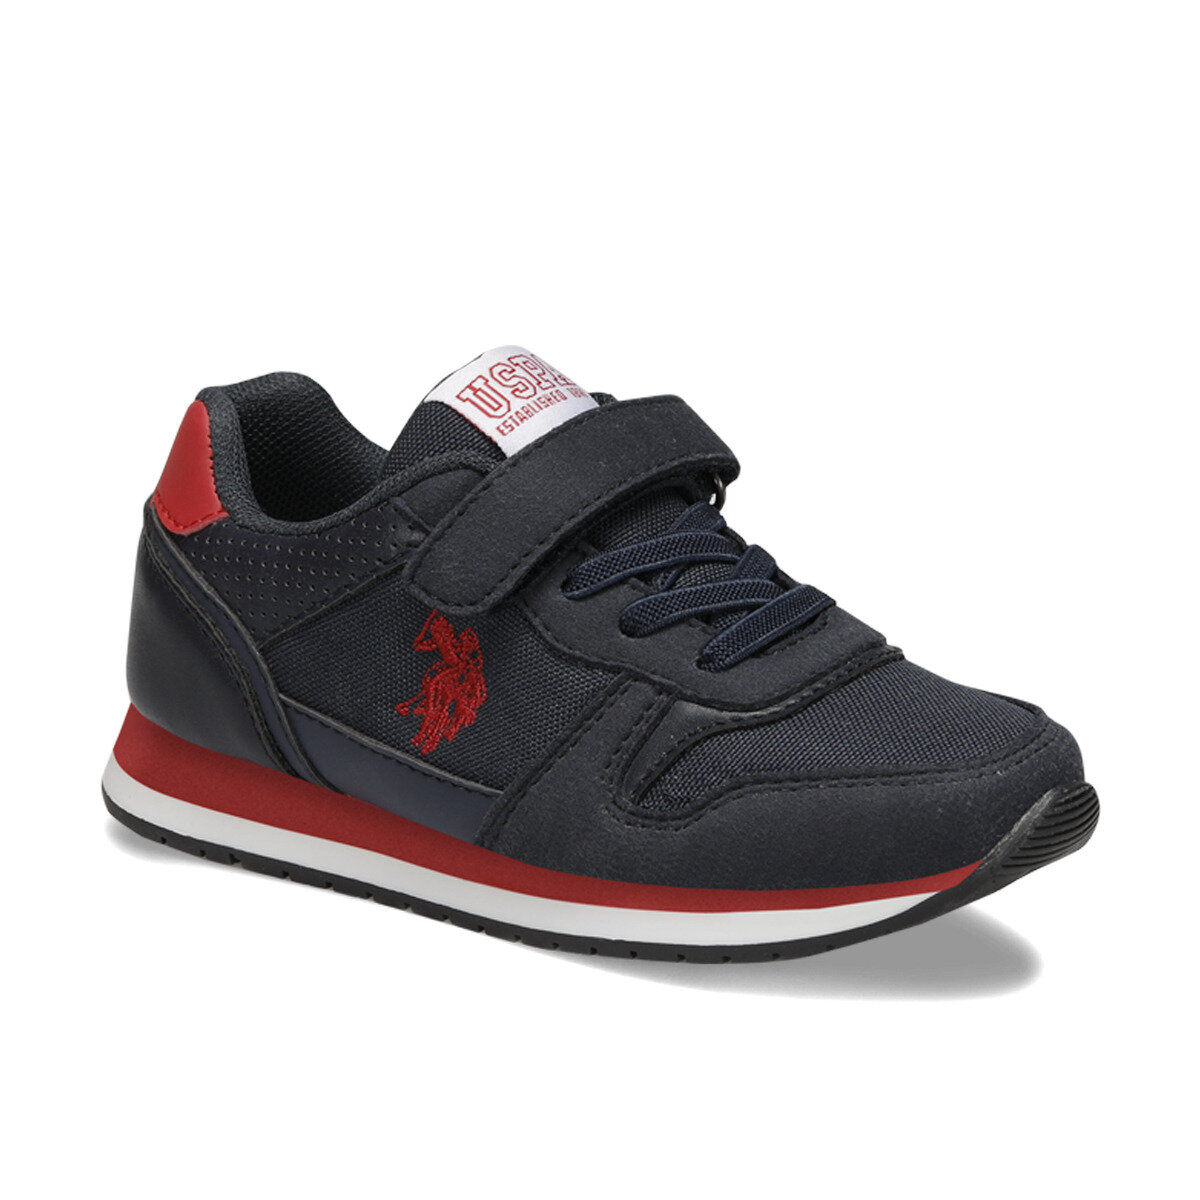 FLO GAGA Navy Blue Male Child Running Shoes U.S. POLO ASSN.